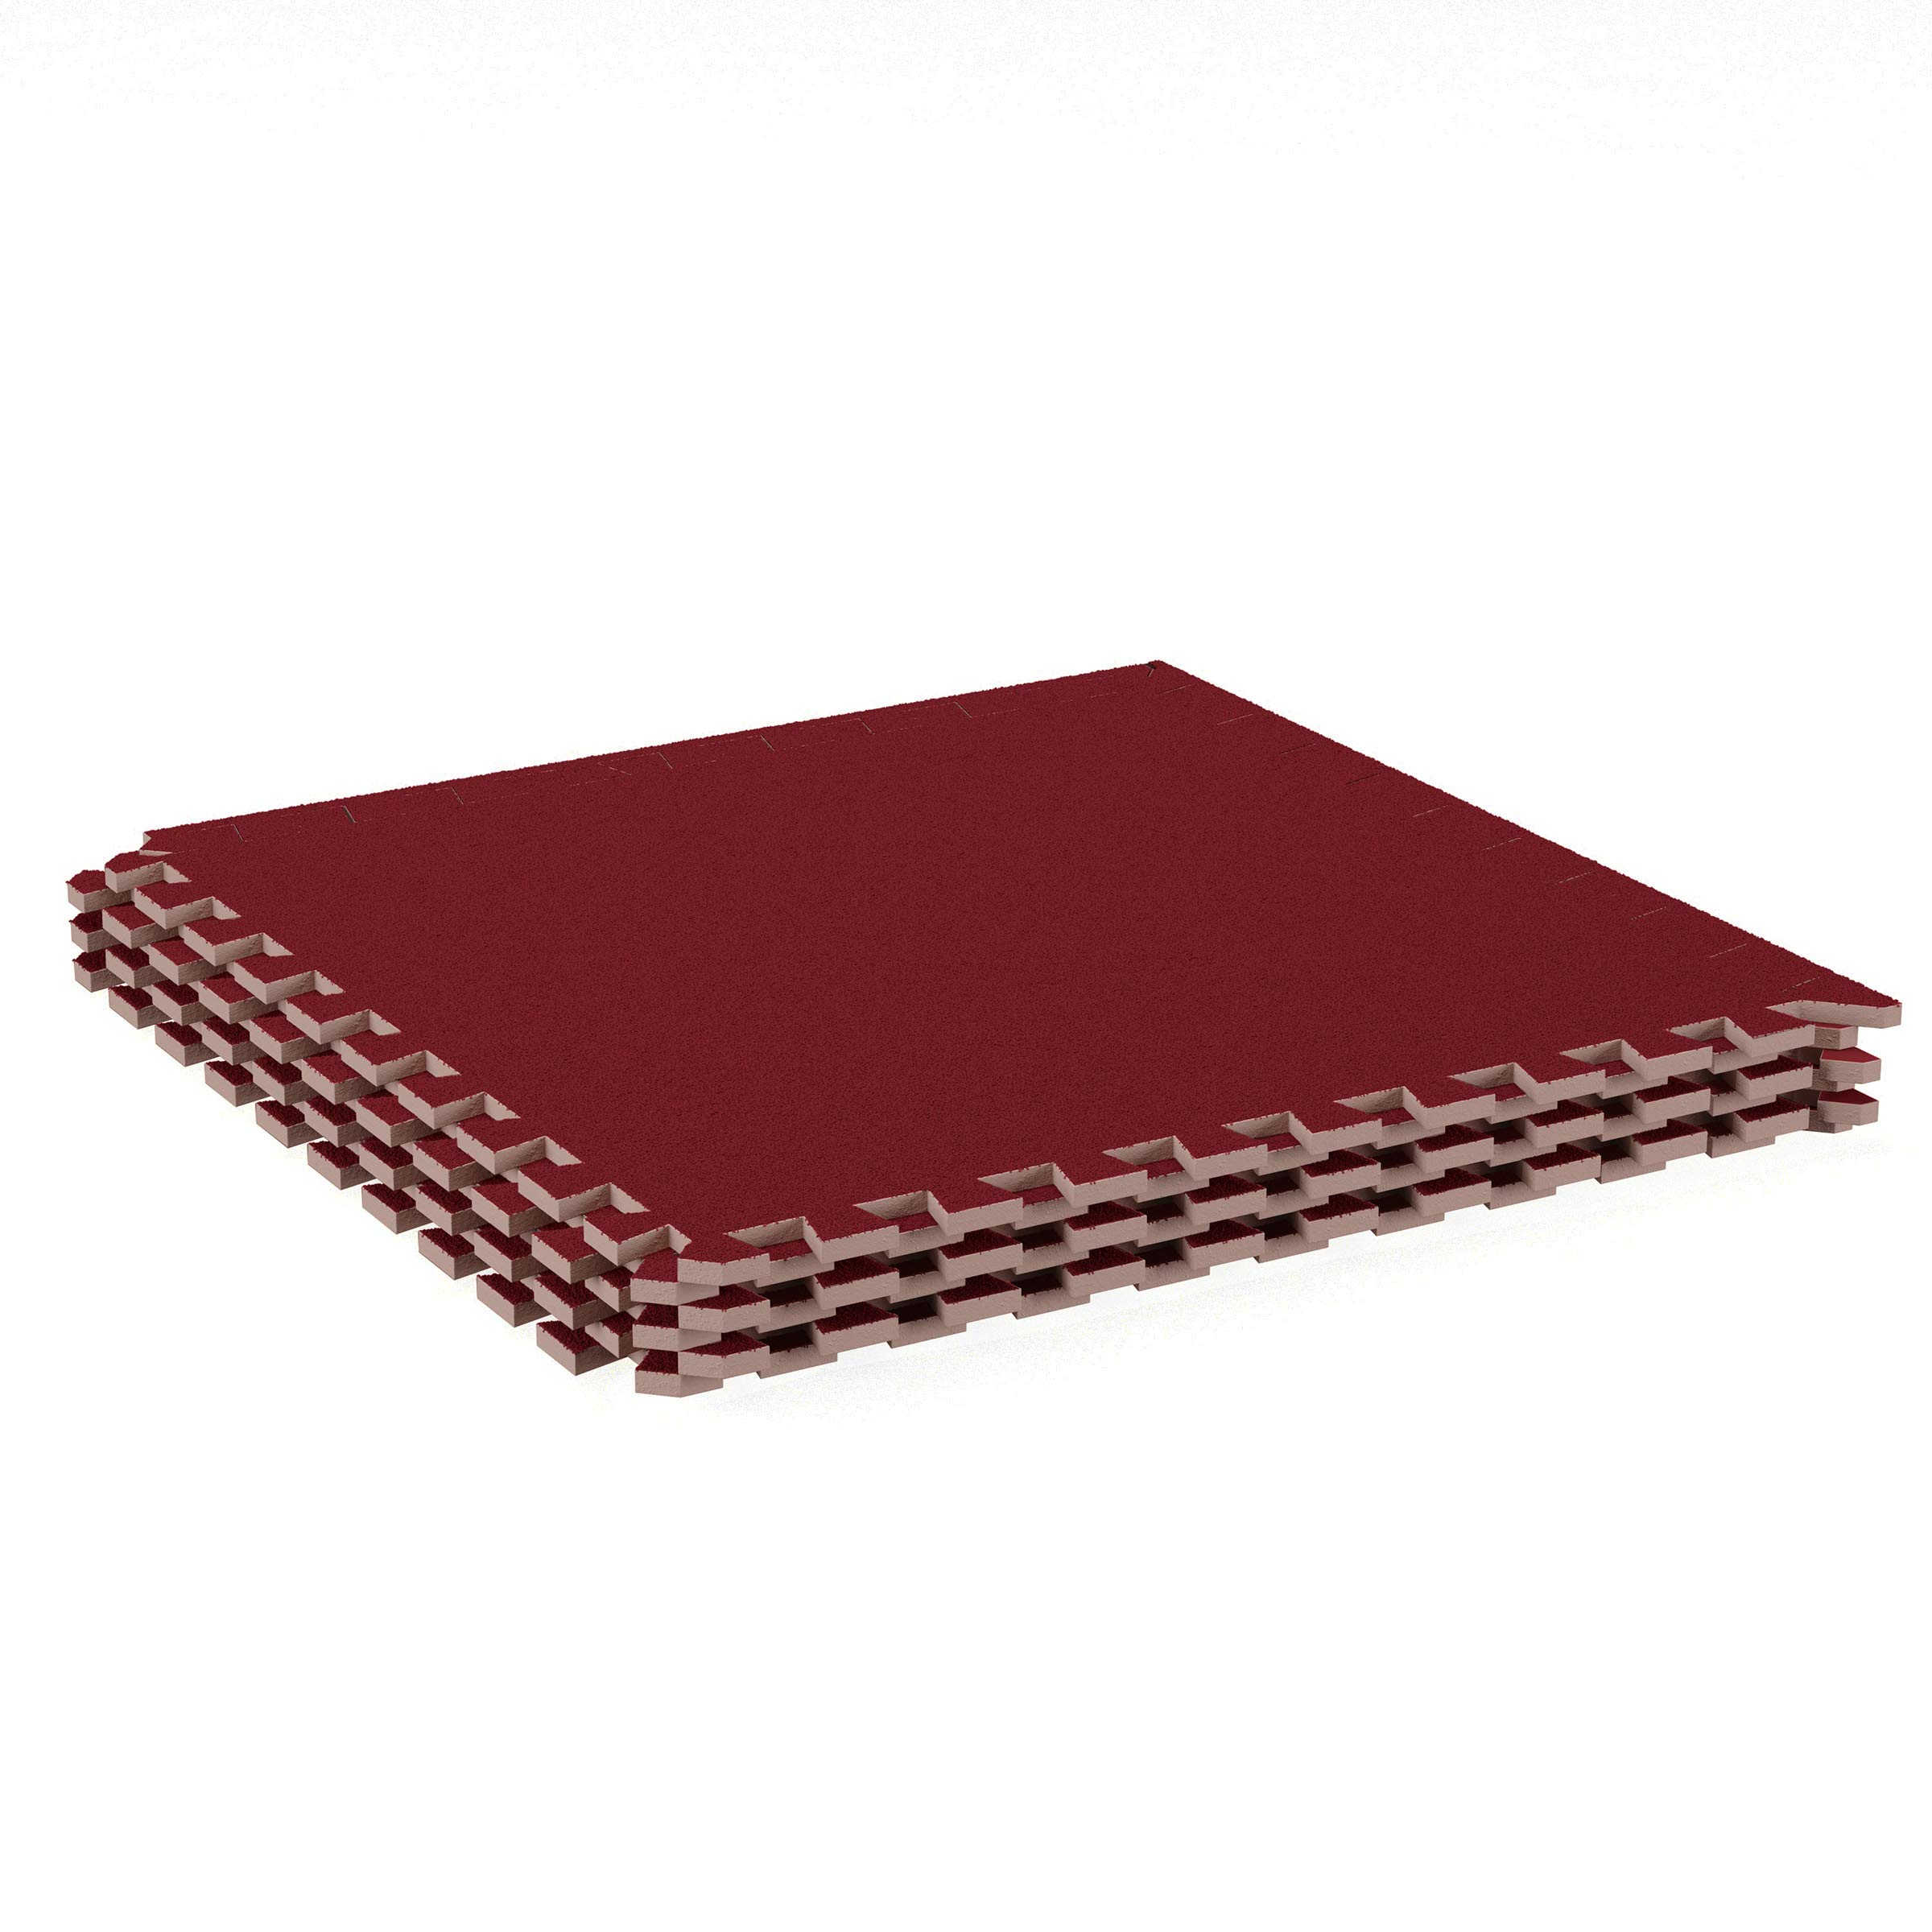 Stalwart Foam Mat Floor Tiles-Interlocking EVA Foam Padding with Soft Carpet Top for Exercise, Yoga, Kids Playroom, Garage, Basement-6 PC Set (Red)